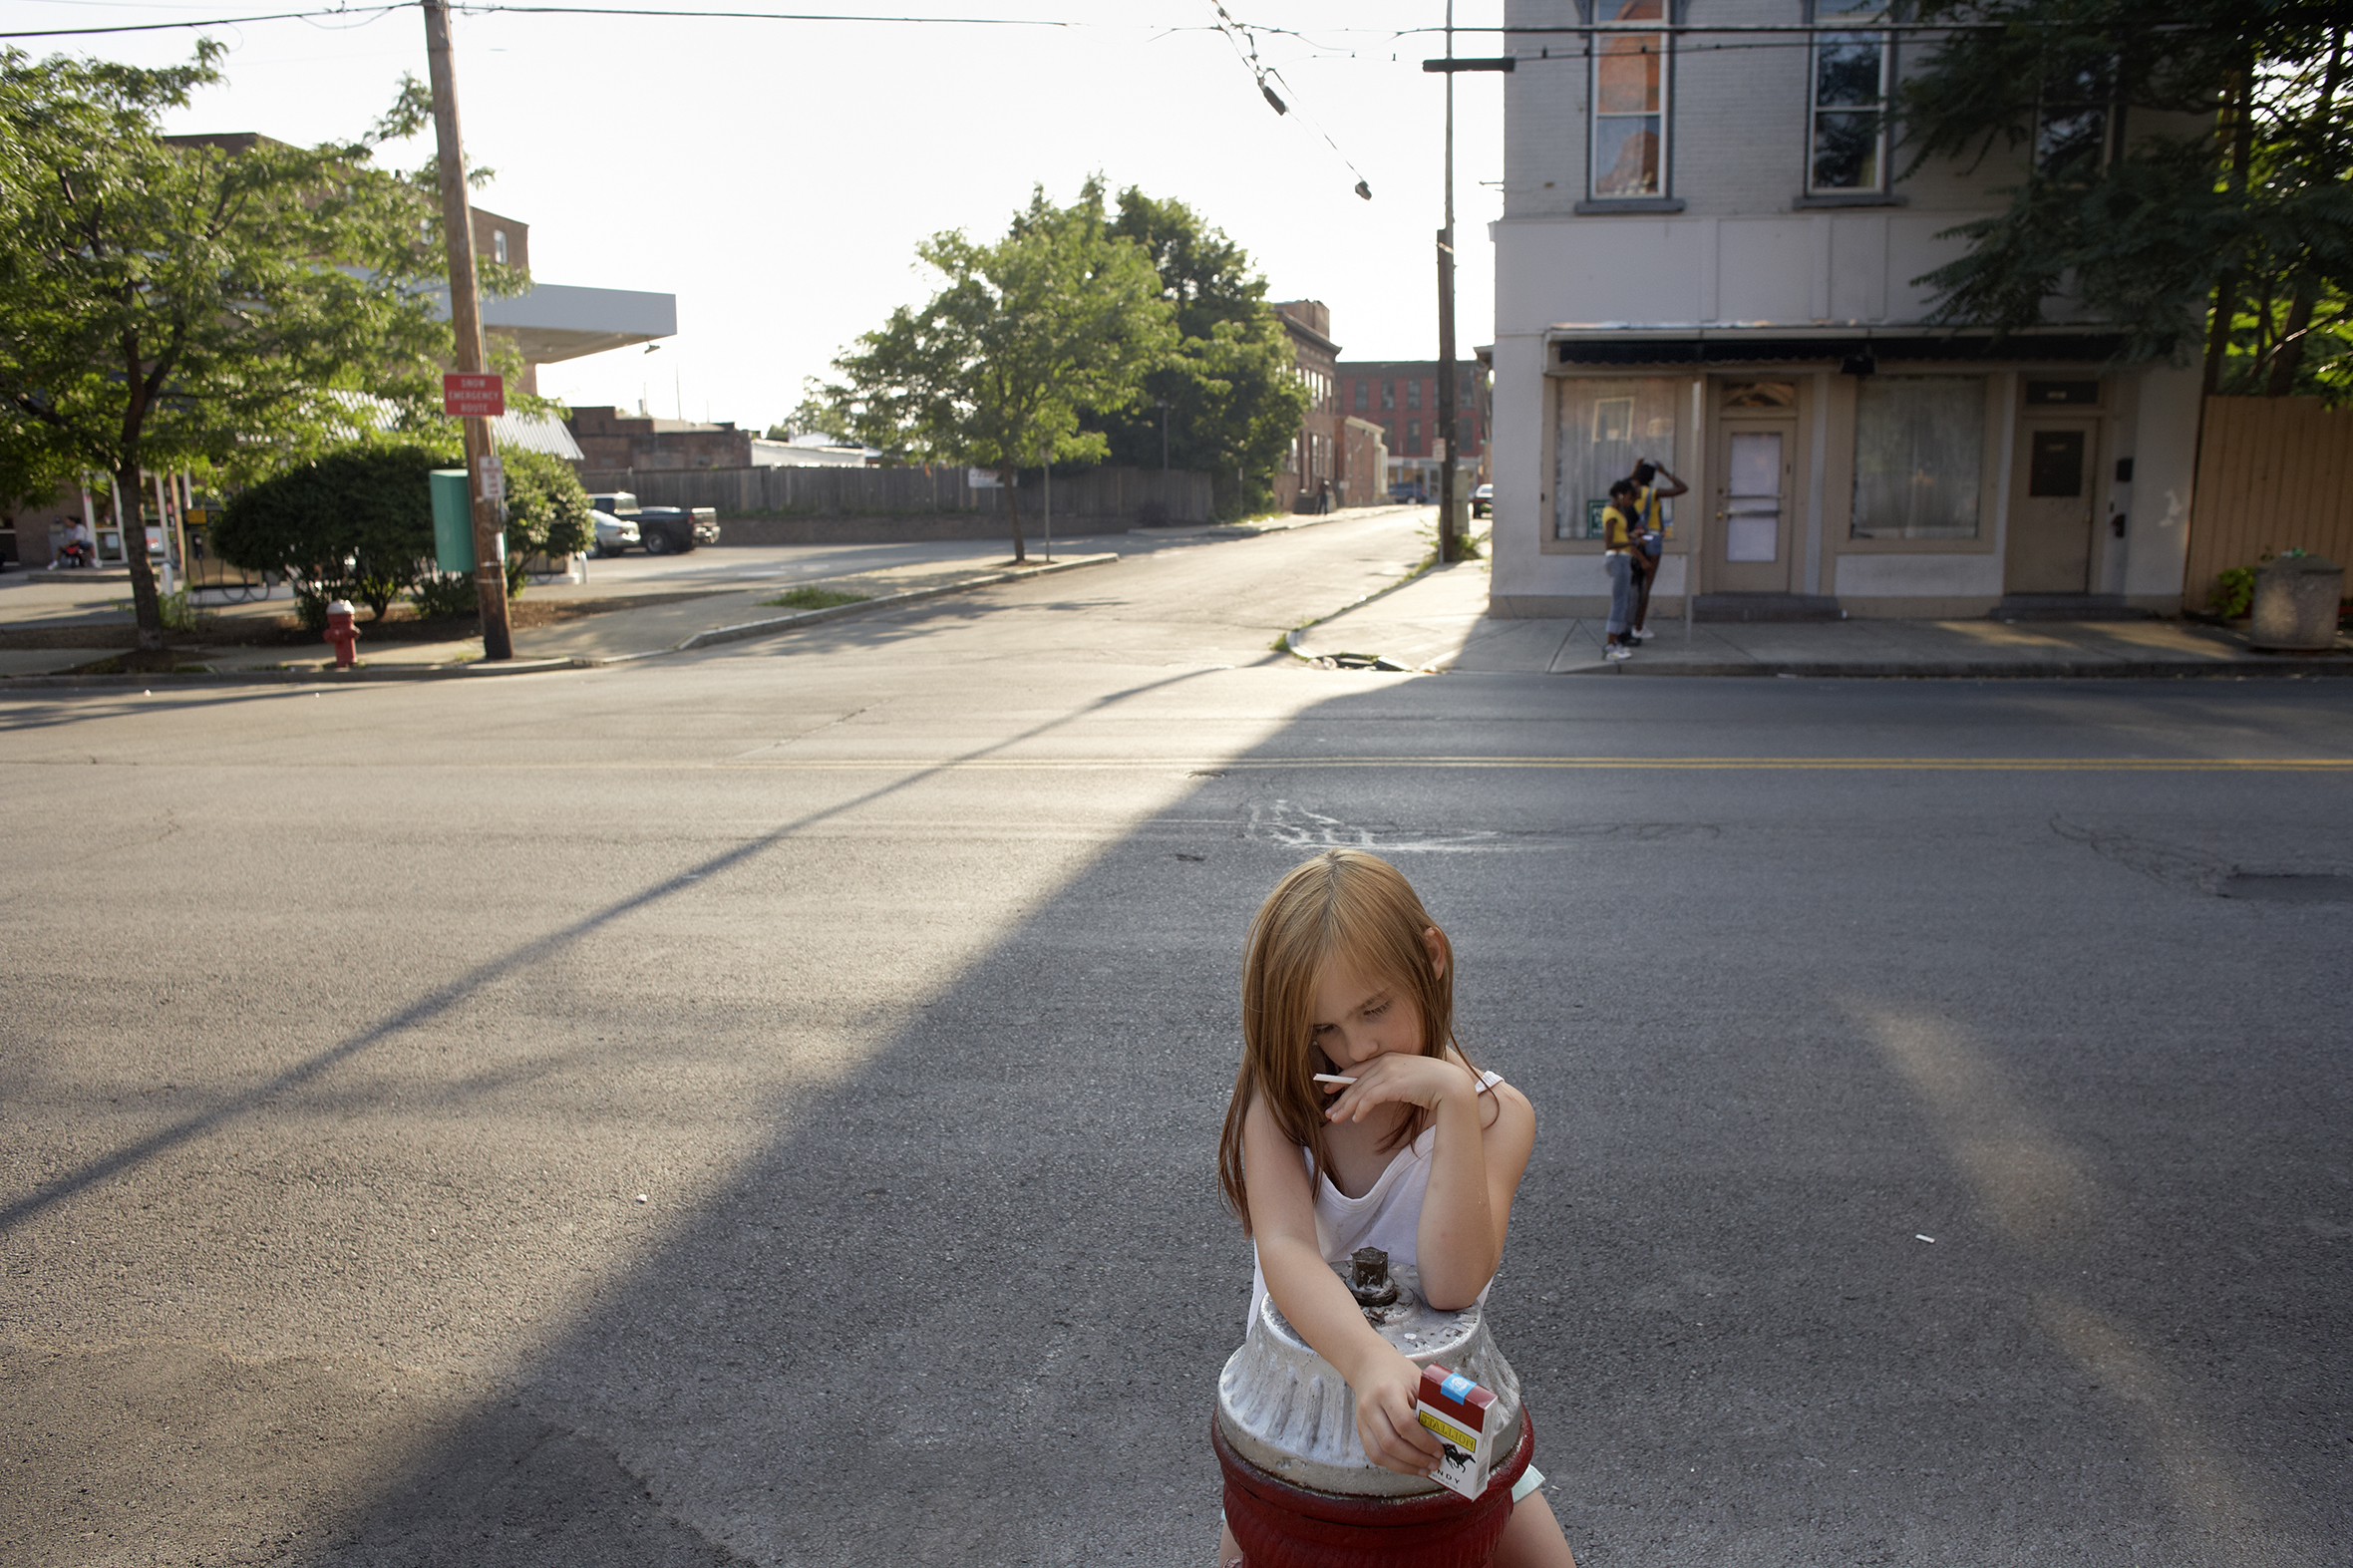 Katie and Candy Cigarette. Sixth Ave, North Troy, 2008.